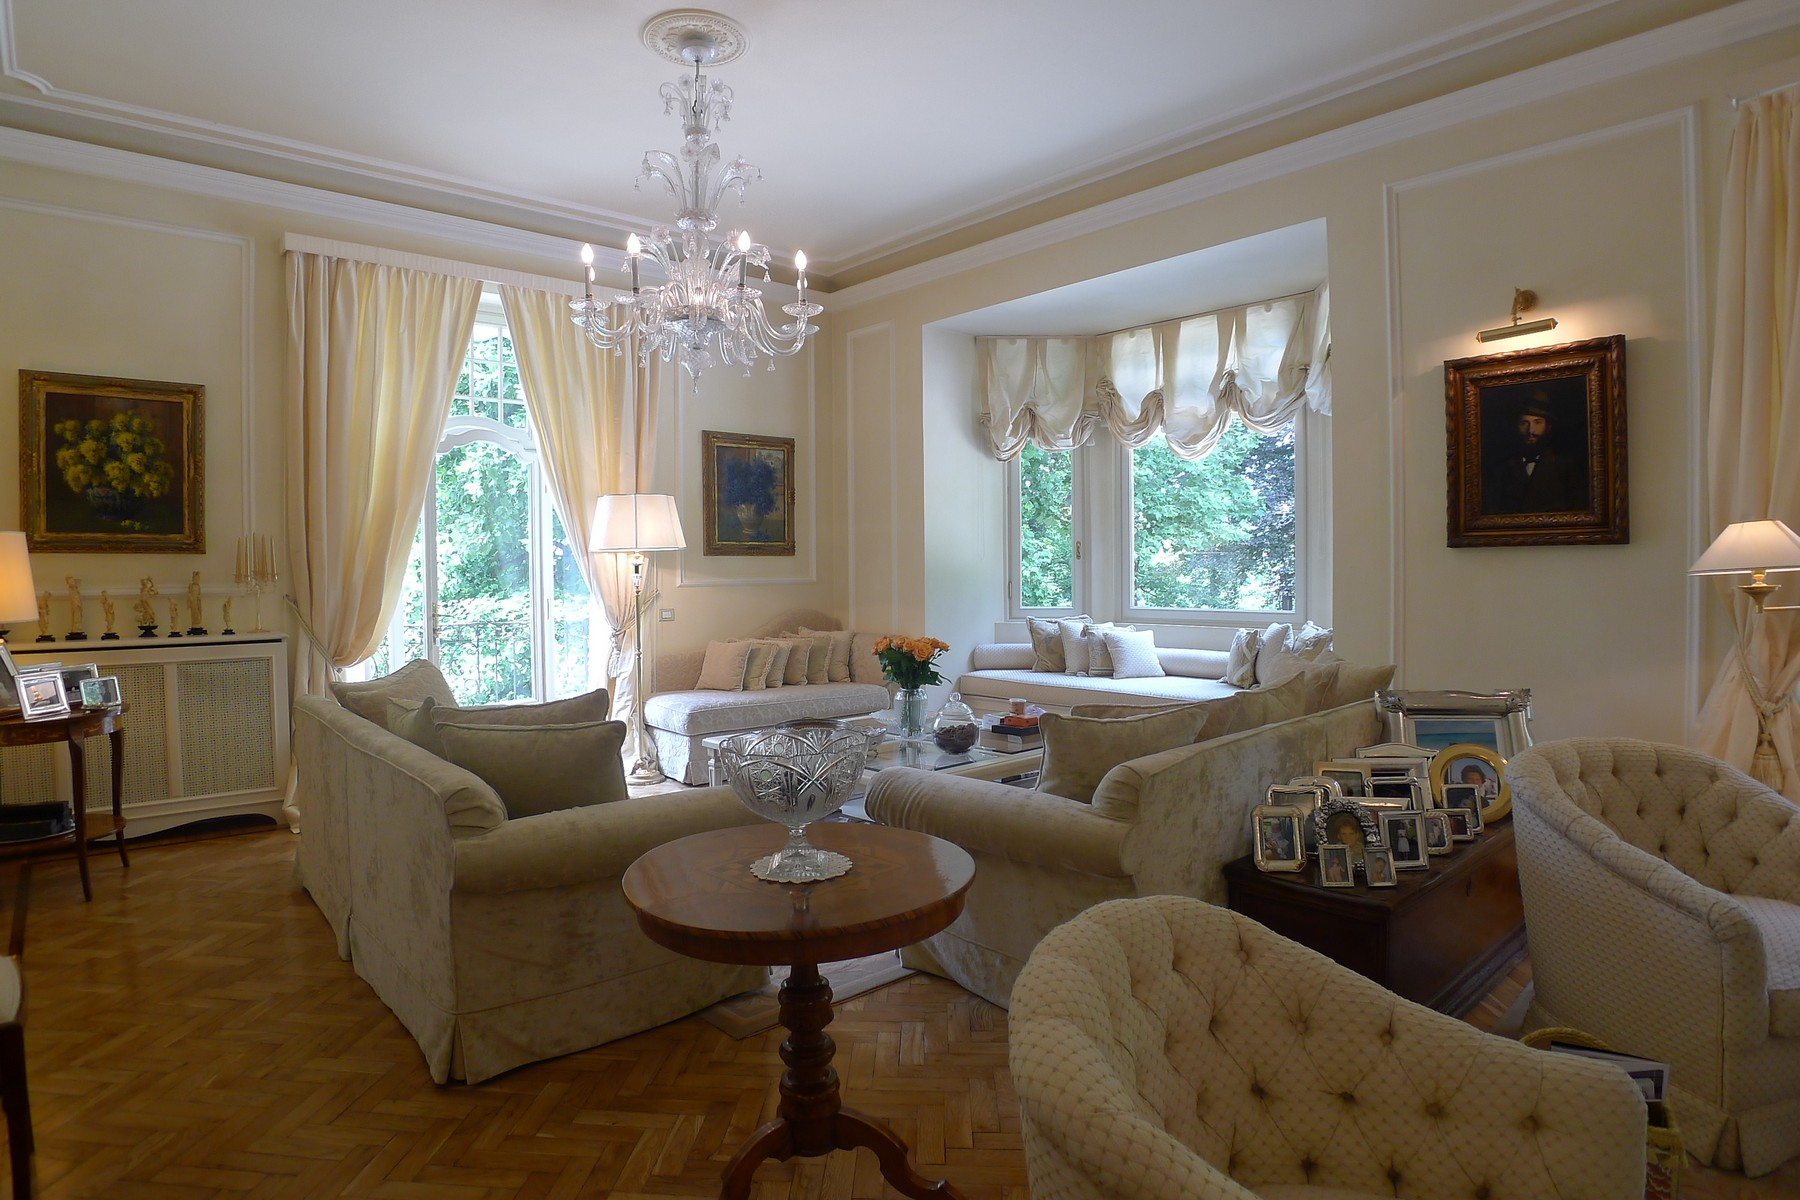 Additional photo for property listing at An exquisite villa on the ourskirts of of Varese via dei Campigli Varese, Varese 21100 Italie